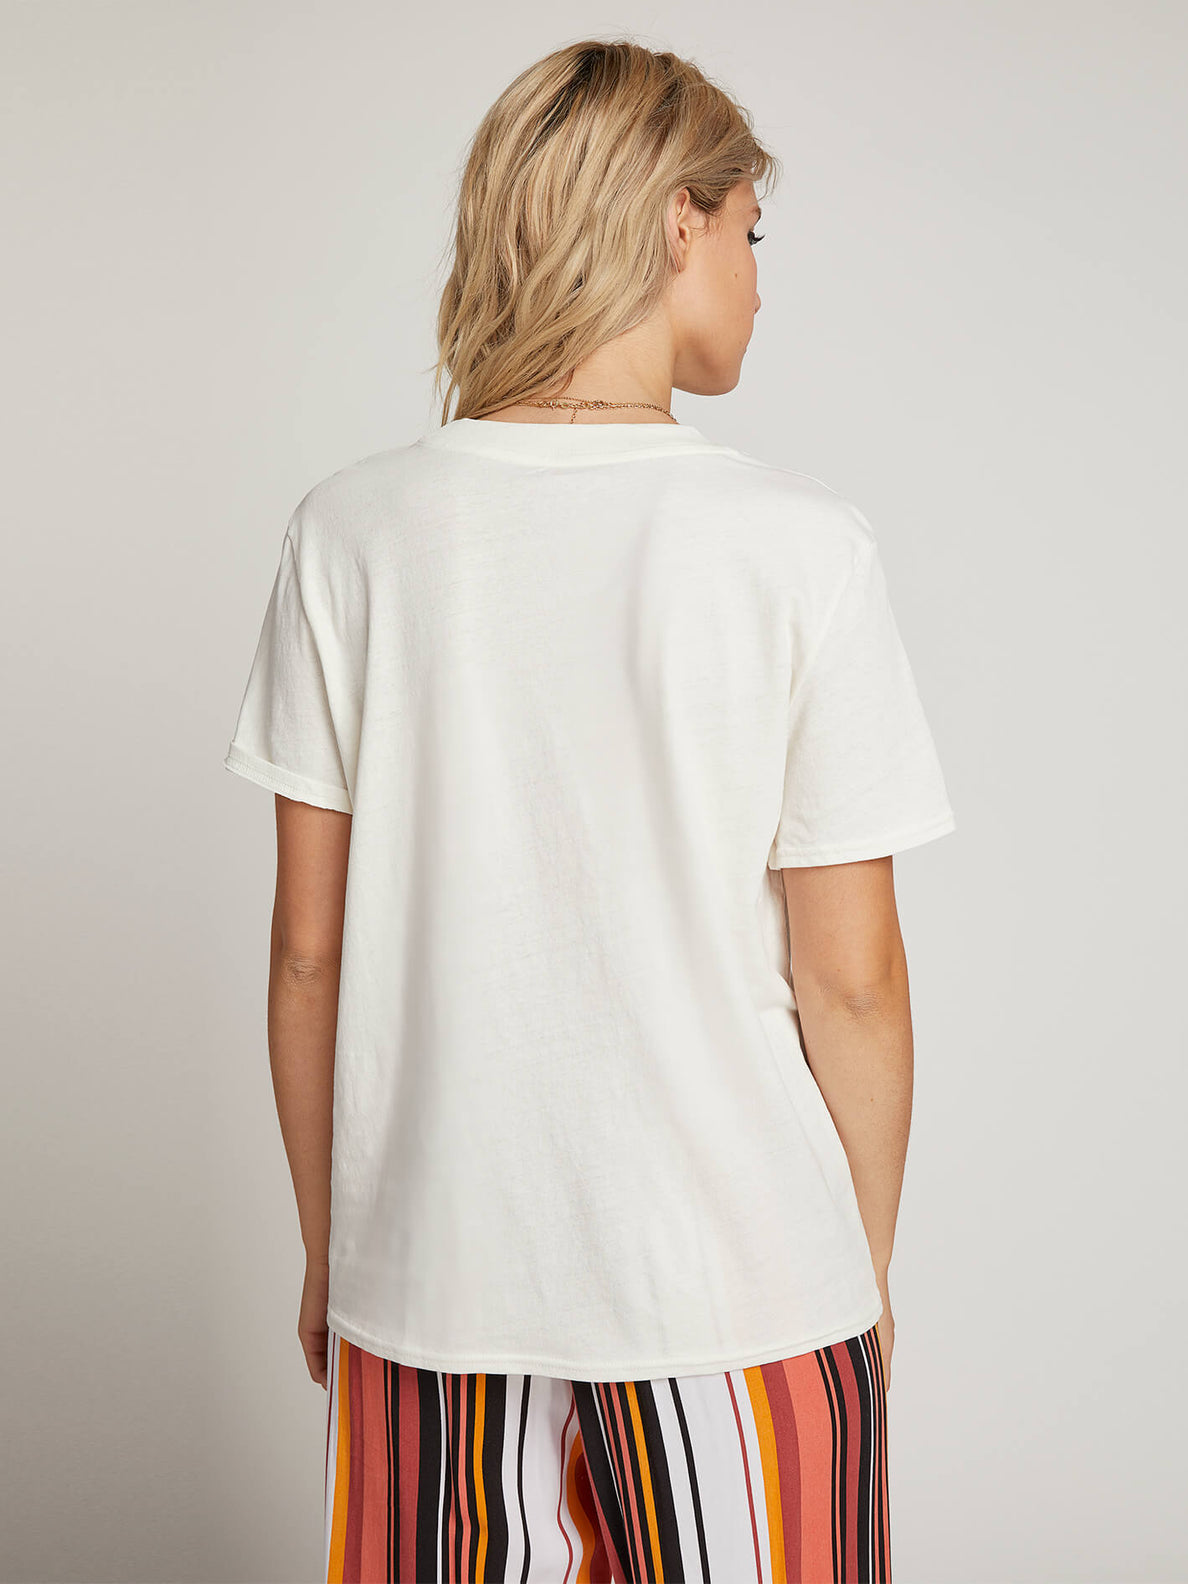 Ozzie Rainbow Tee In White, Back View